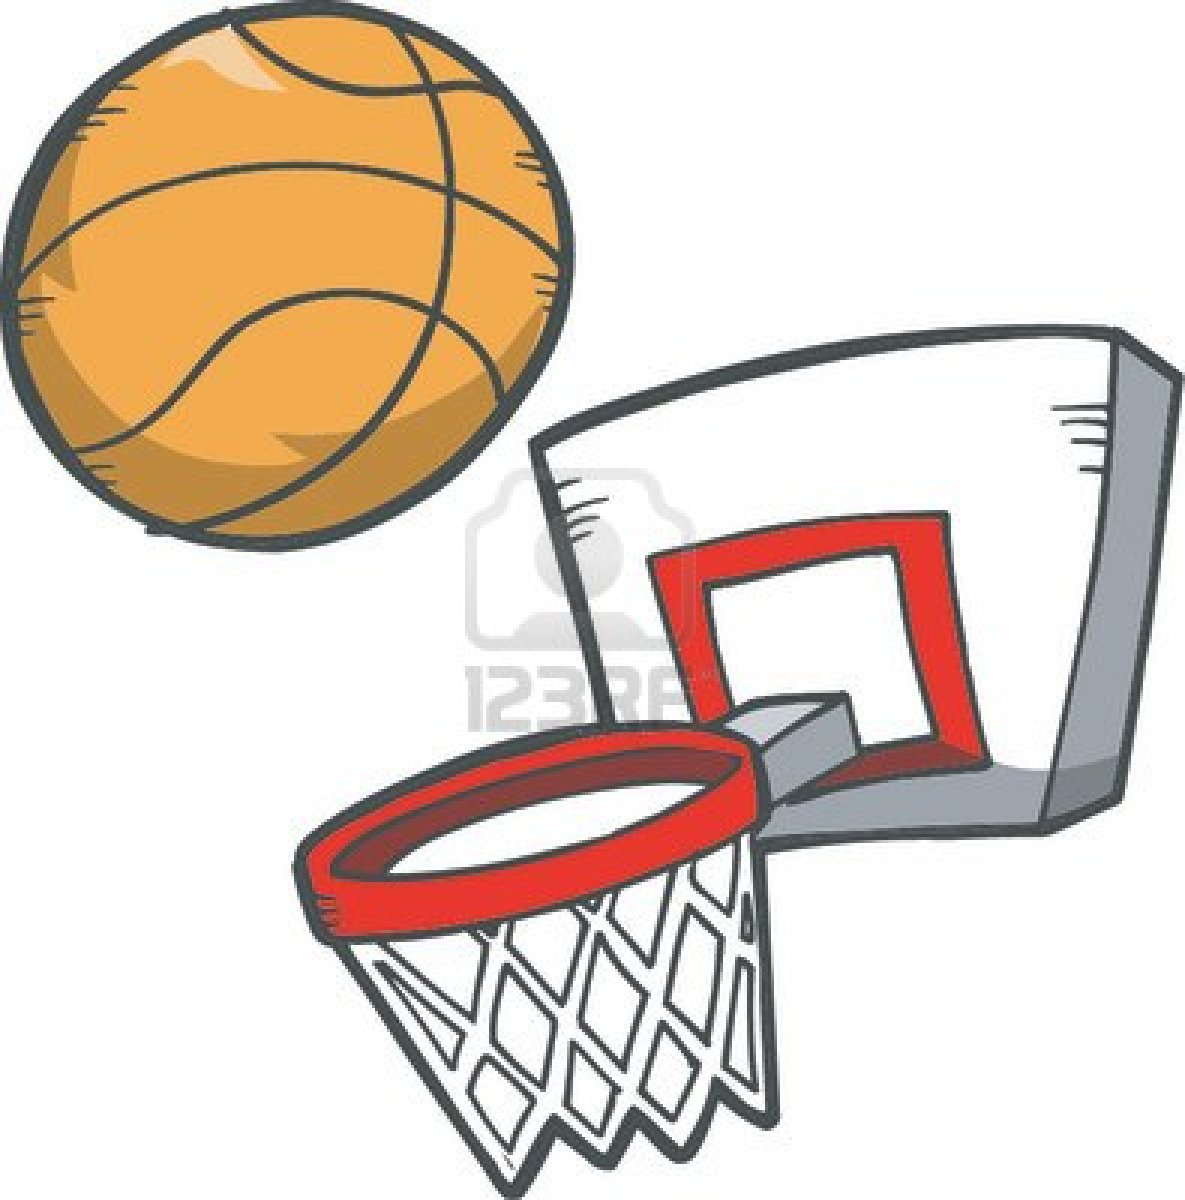 basketball hoop clipart. Basket Ball Clip Art | School Clipart